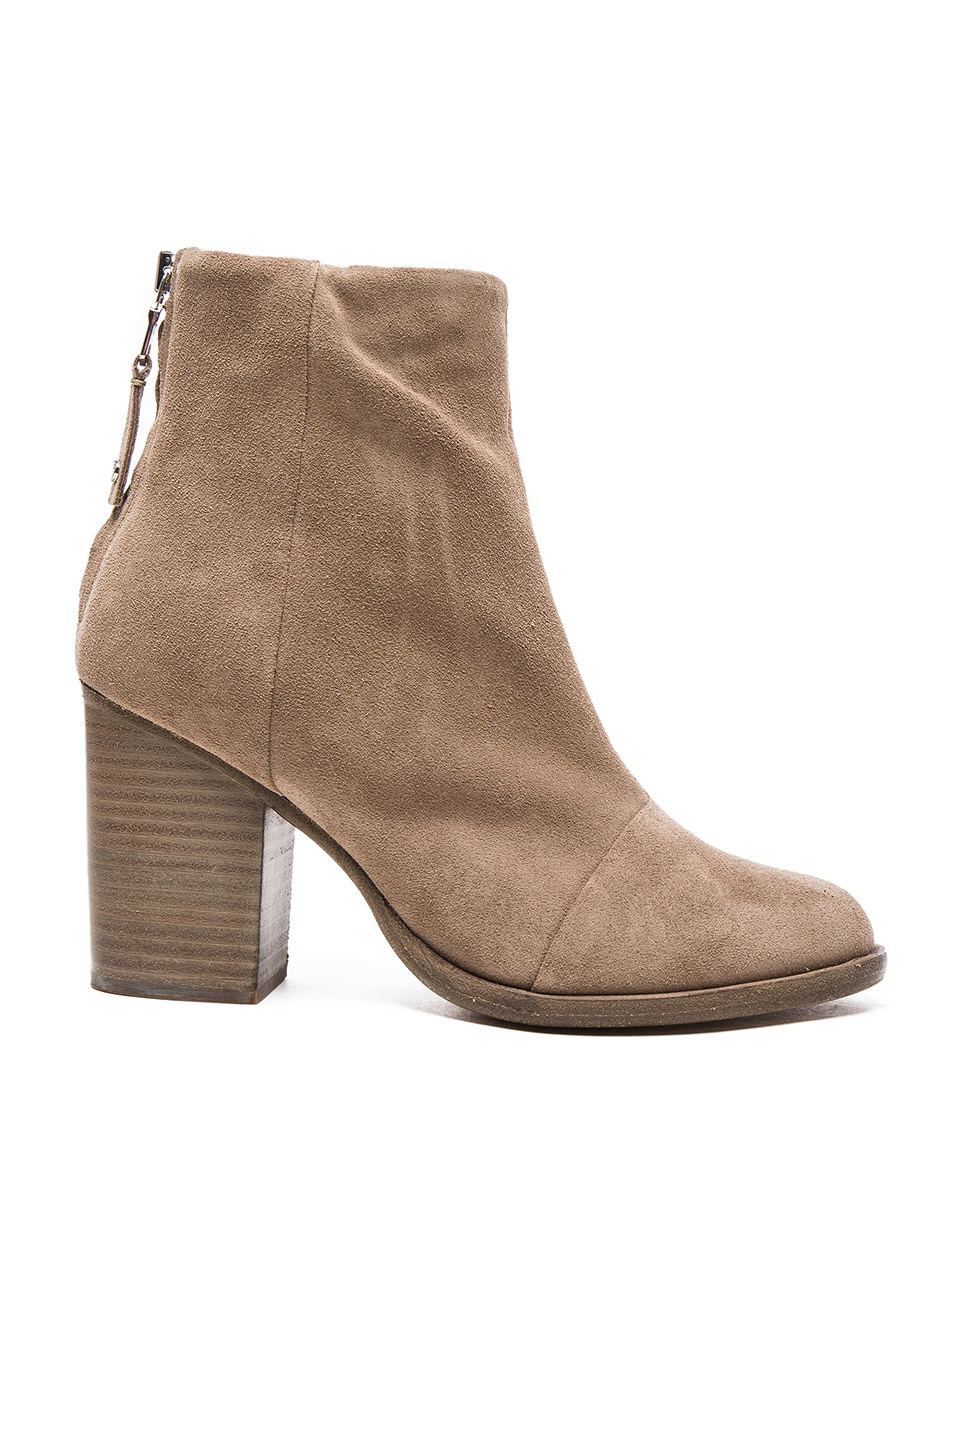 Image 1 of Rag & Bone Suede Ashby Booties in Stone